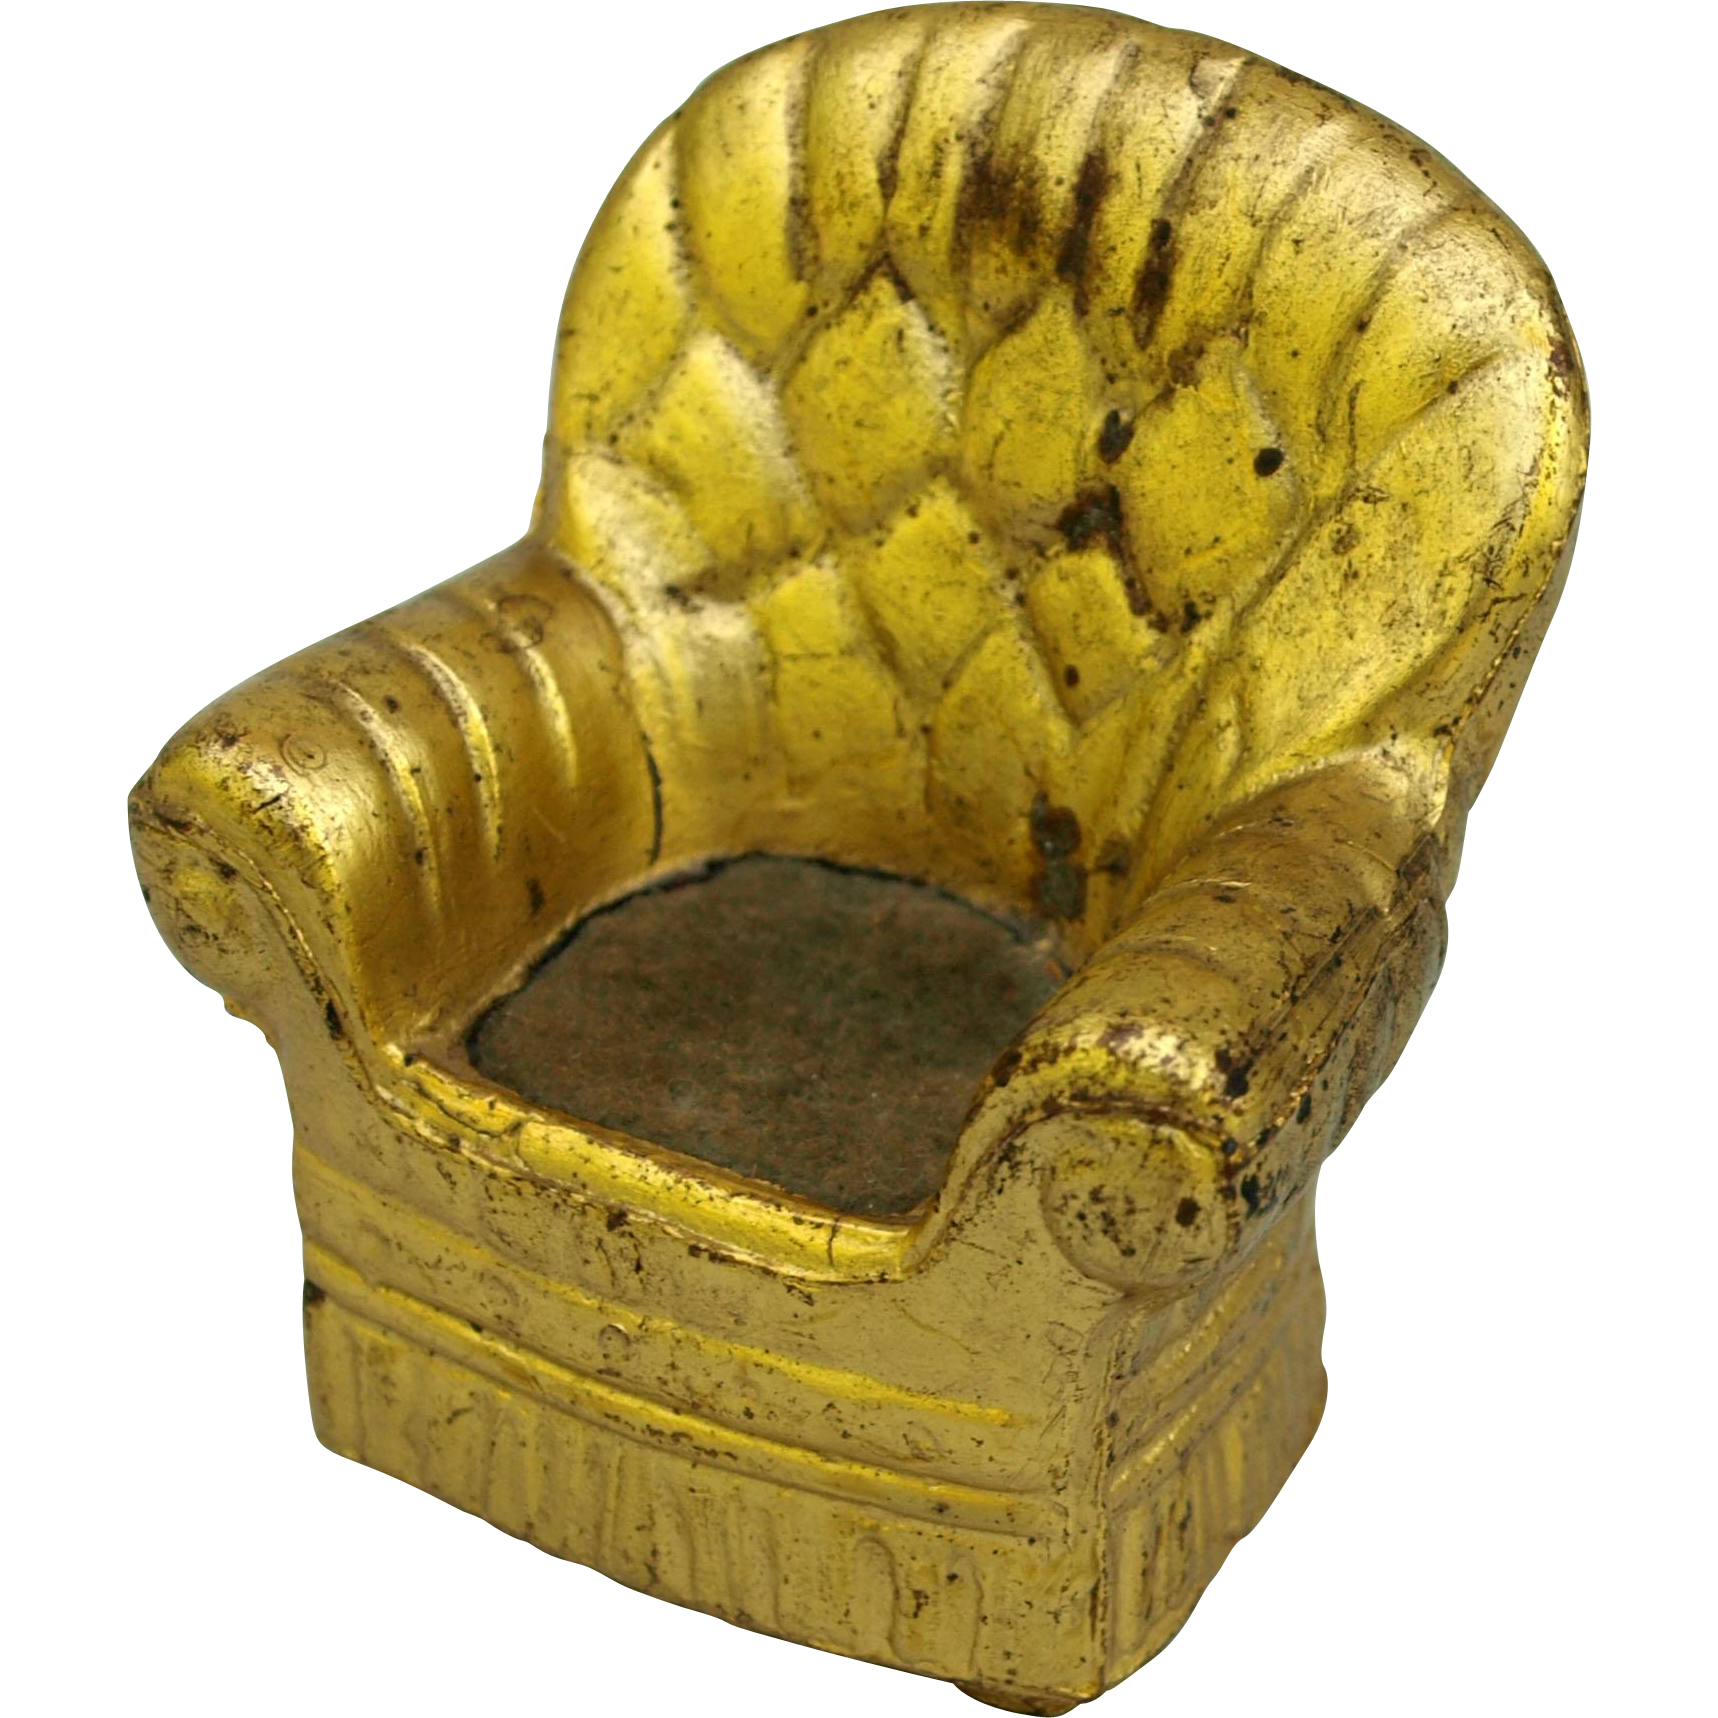 Miniature pin cushion metal dollhouse arm chair gold paint velvet seat needle sewing collectible 2 inches